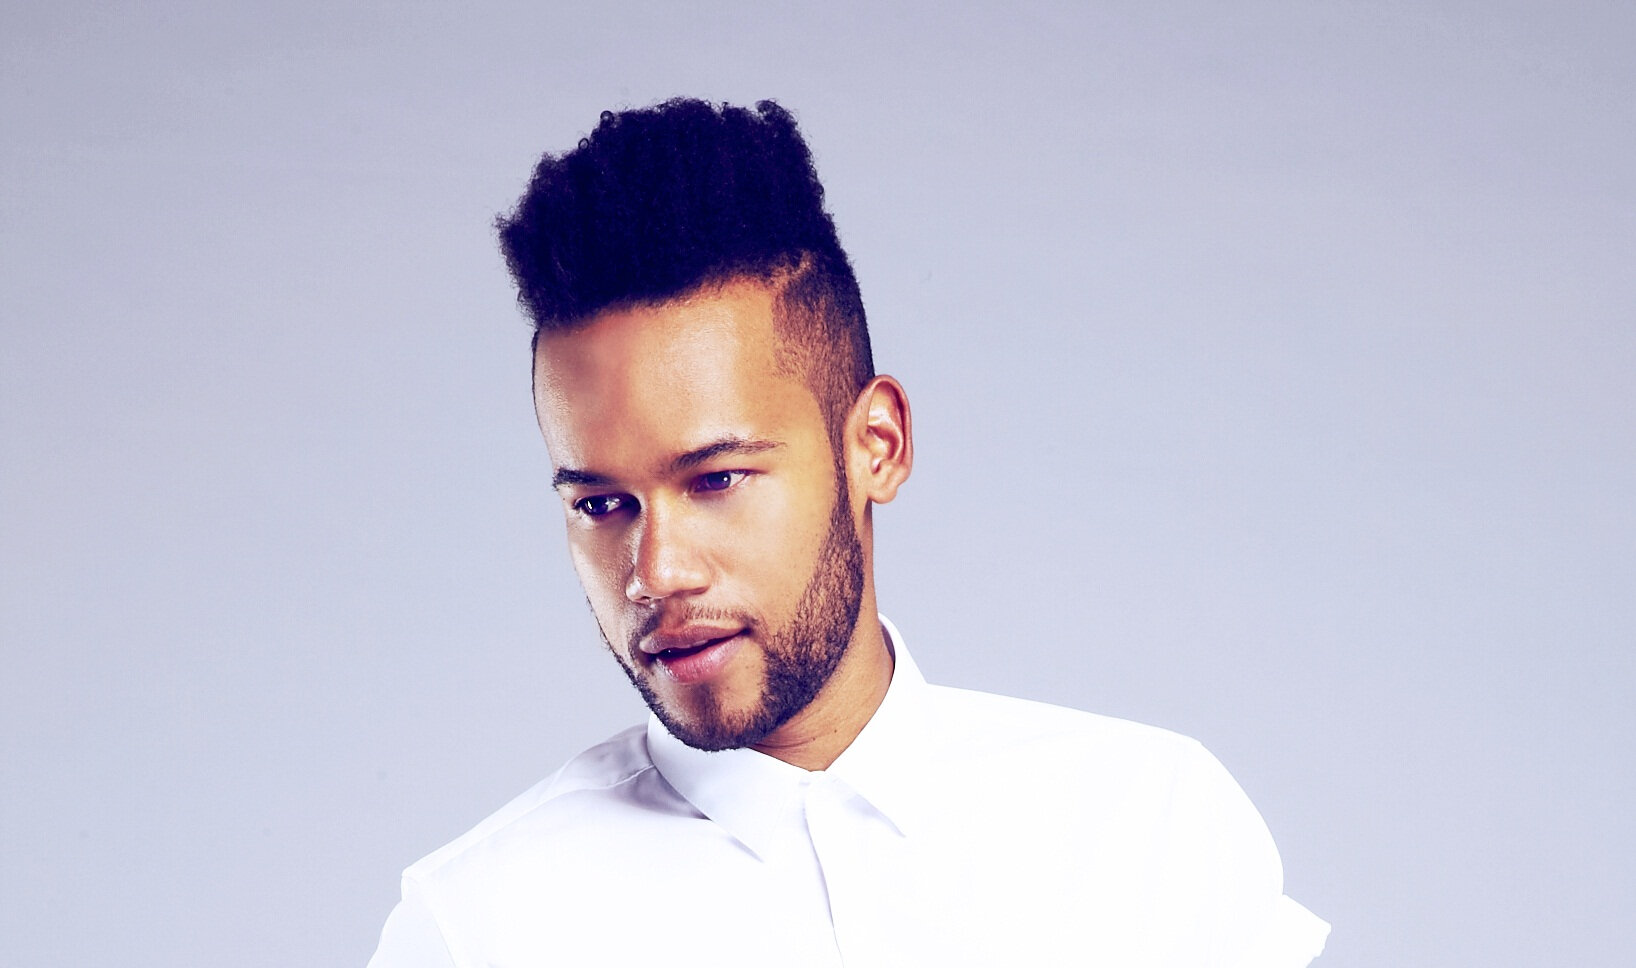 Part 3: How well do you know your mom, we asked Chad Saaiman